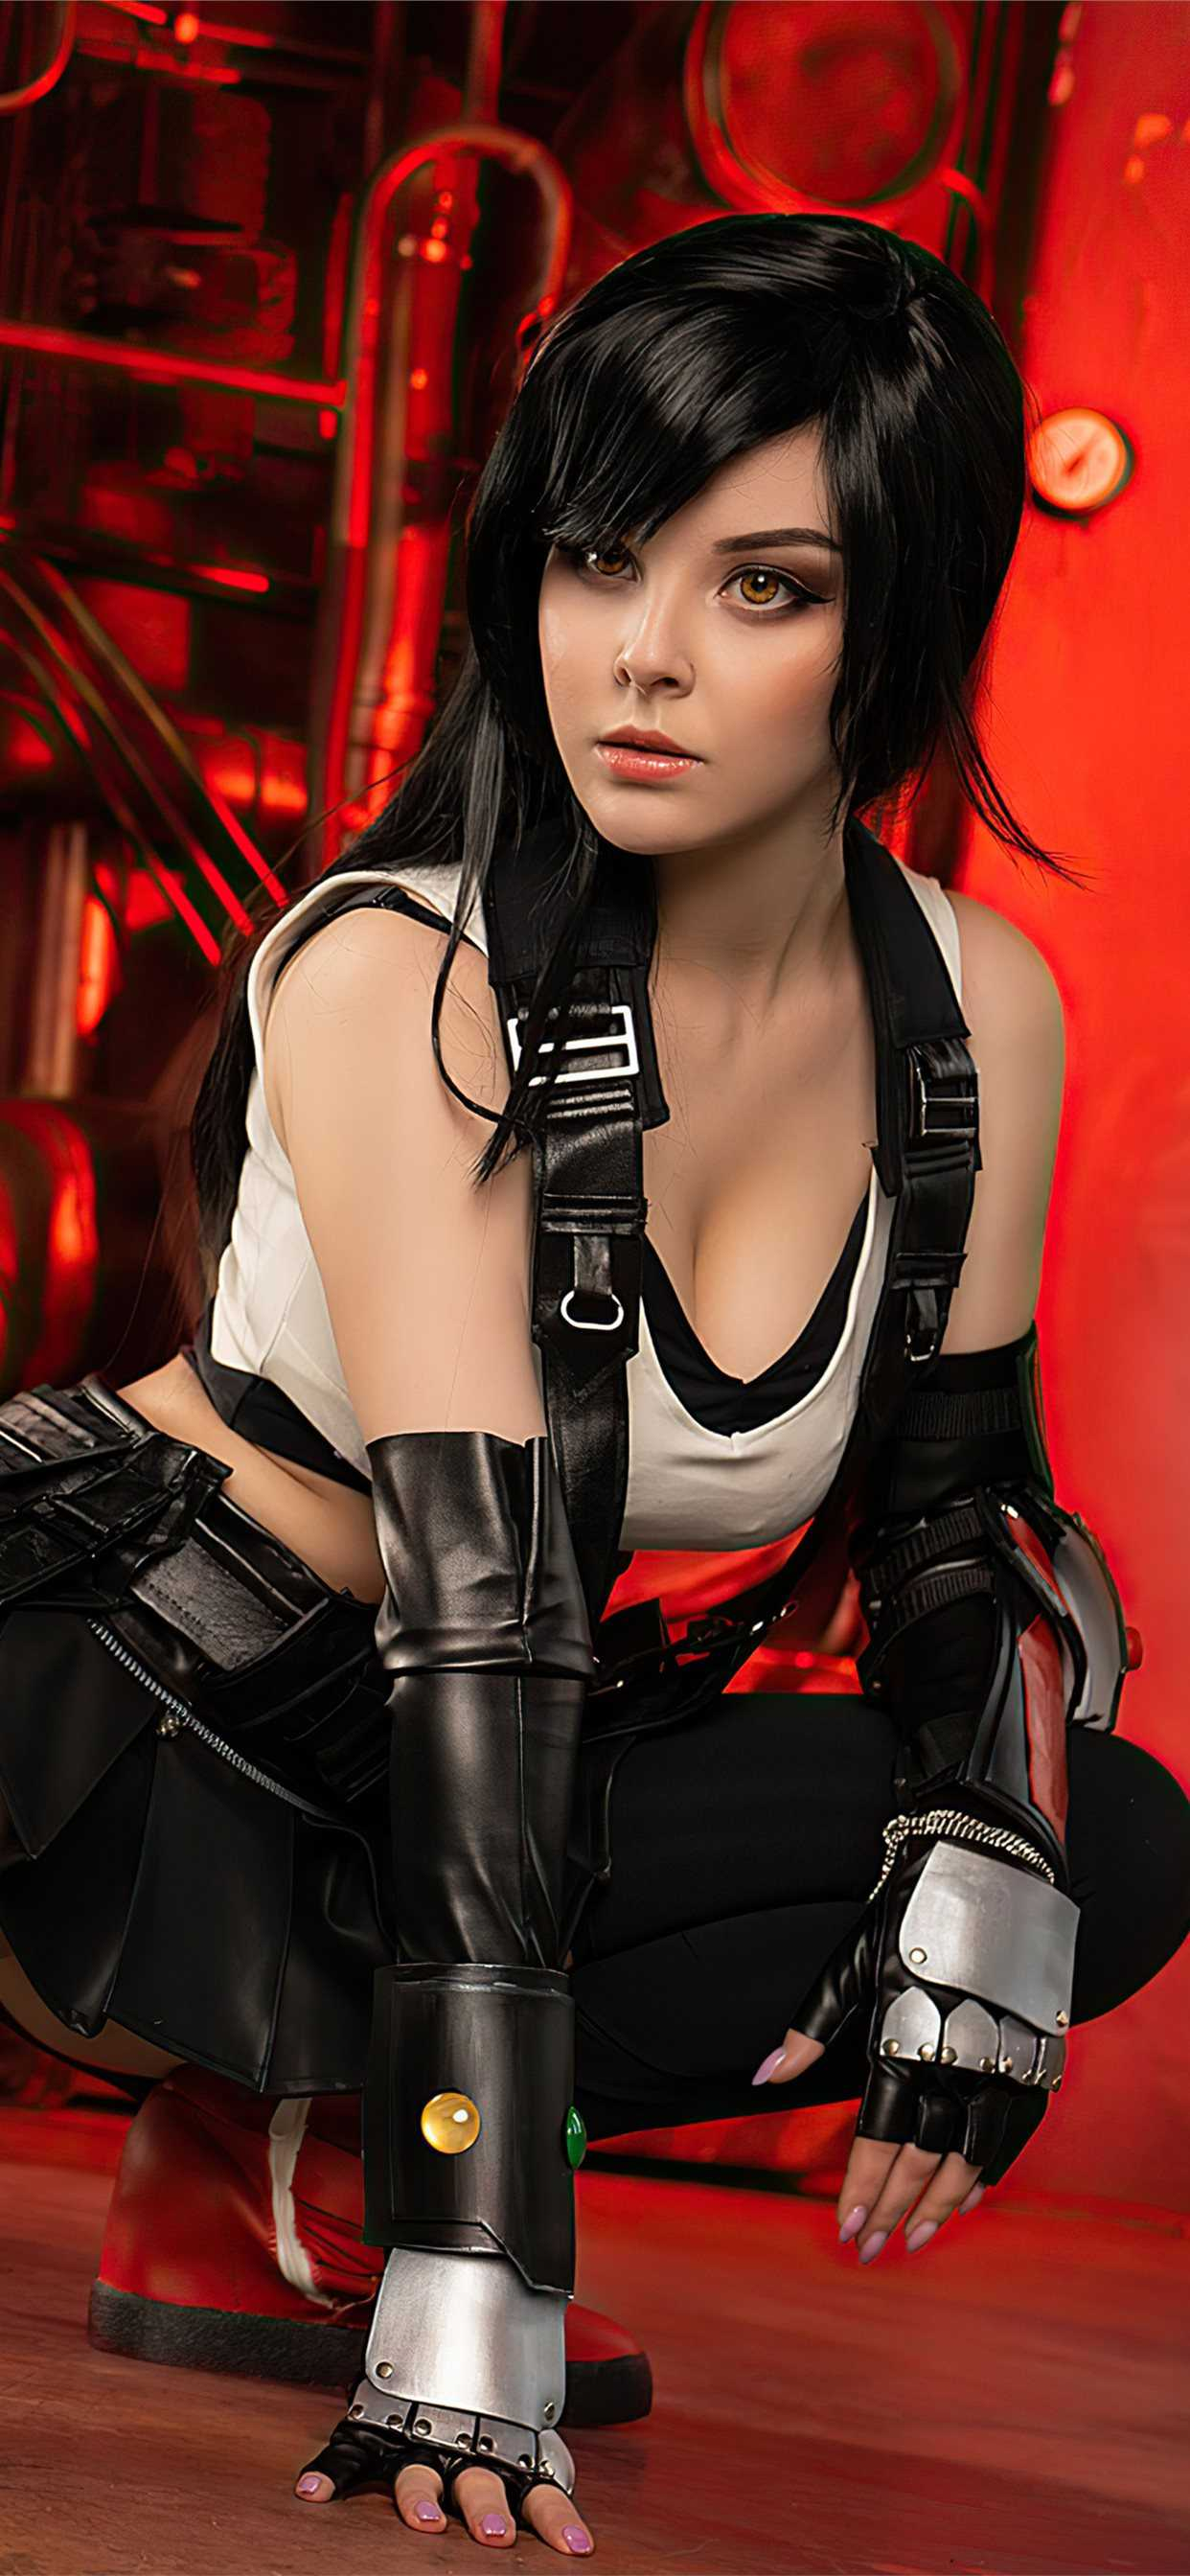 Tifa Lockhart Wallpaper Android Kolpaper Awesome Free Hd Wallpapers